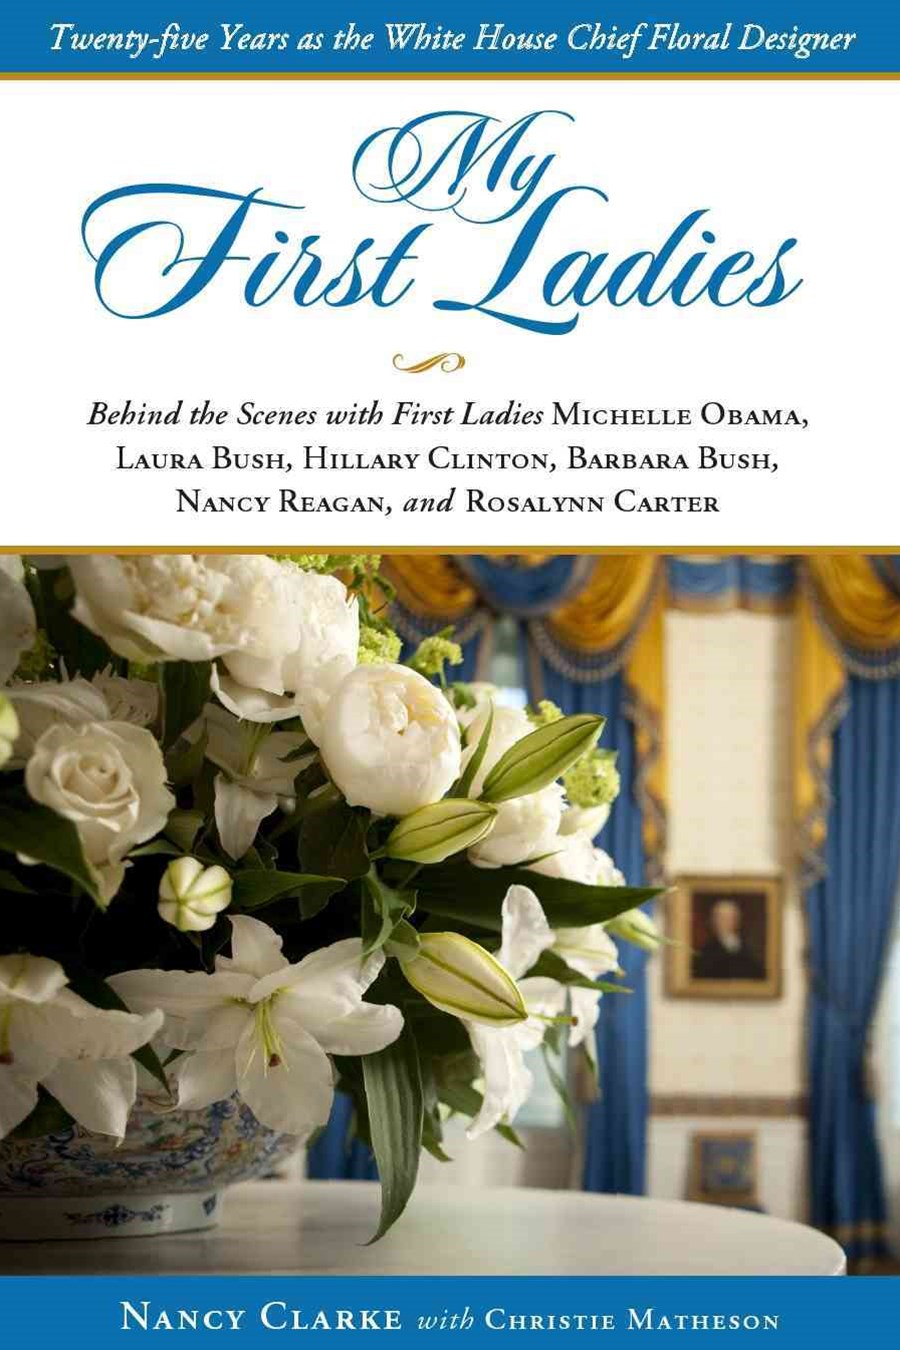 My First Ladies, Thirty Years as the White House's Chief Floral Designer